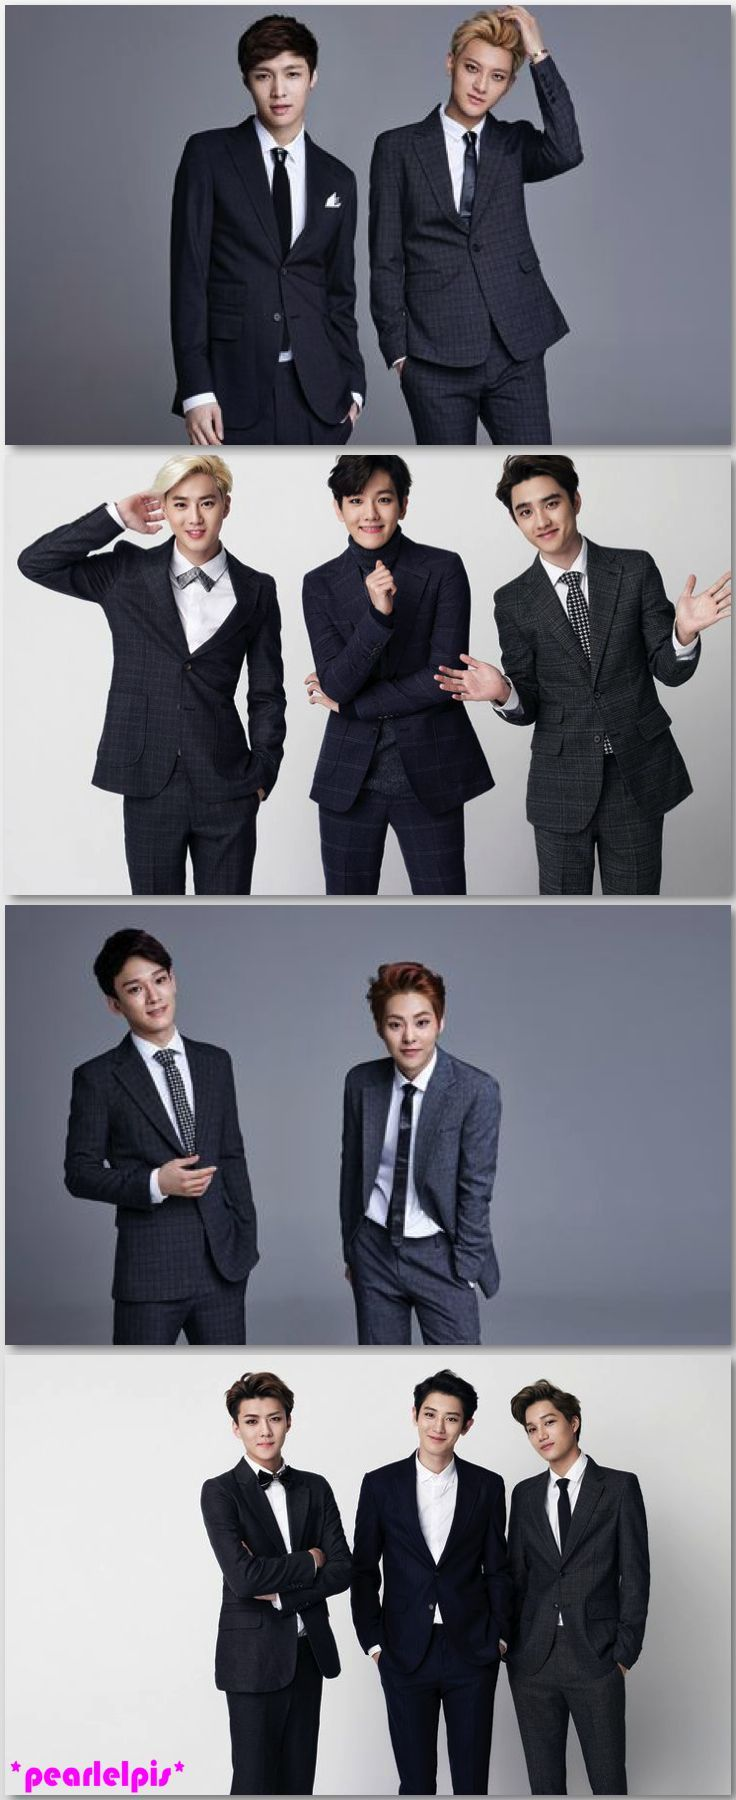 EXO should not be allowed to wear suits